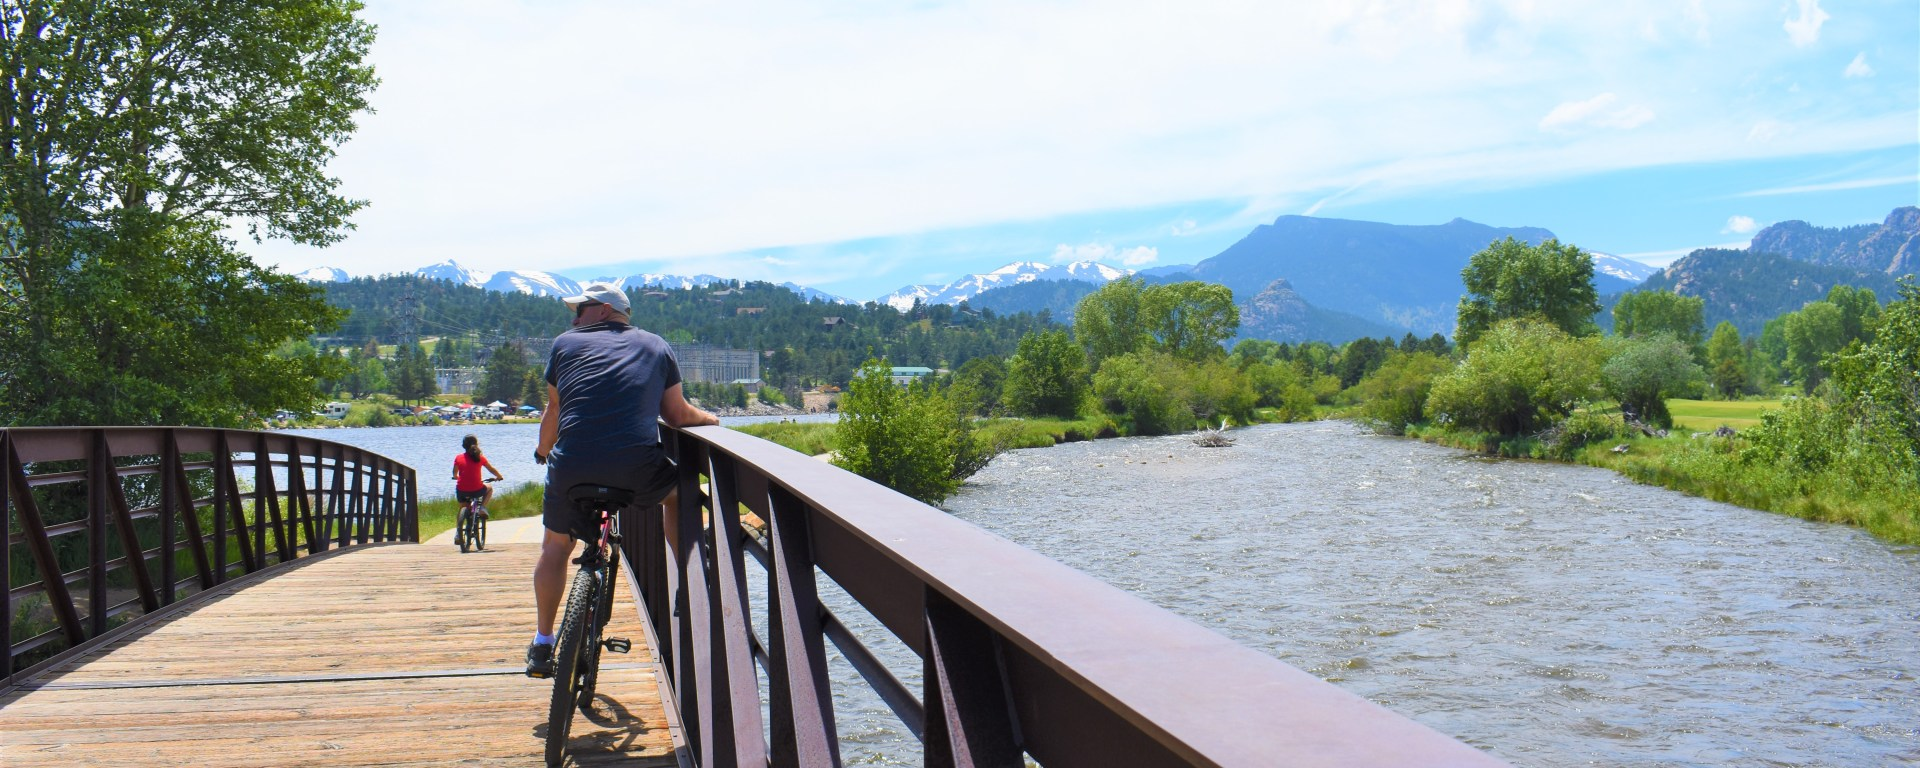 man at river on bridge and bike. Looking at mountains in Rocky Mountain National Park in Estes Park Colorado